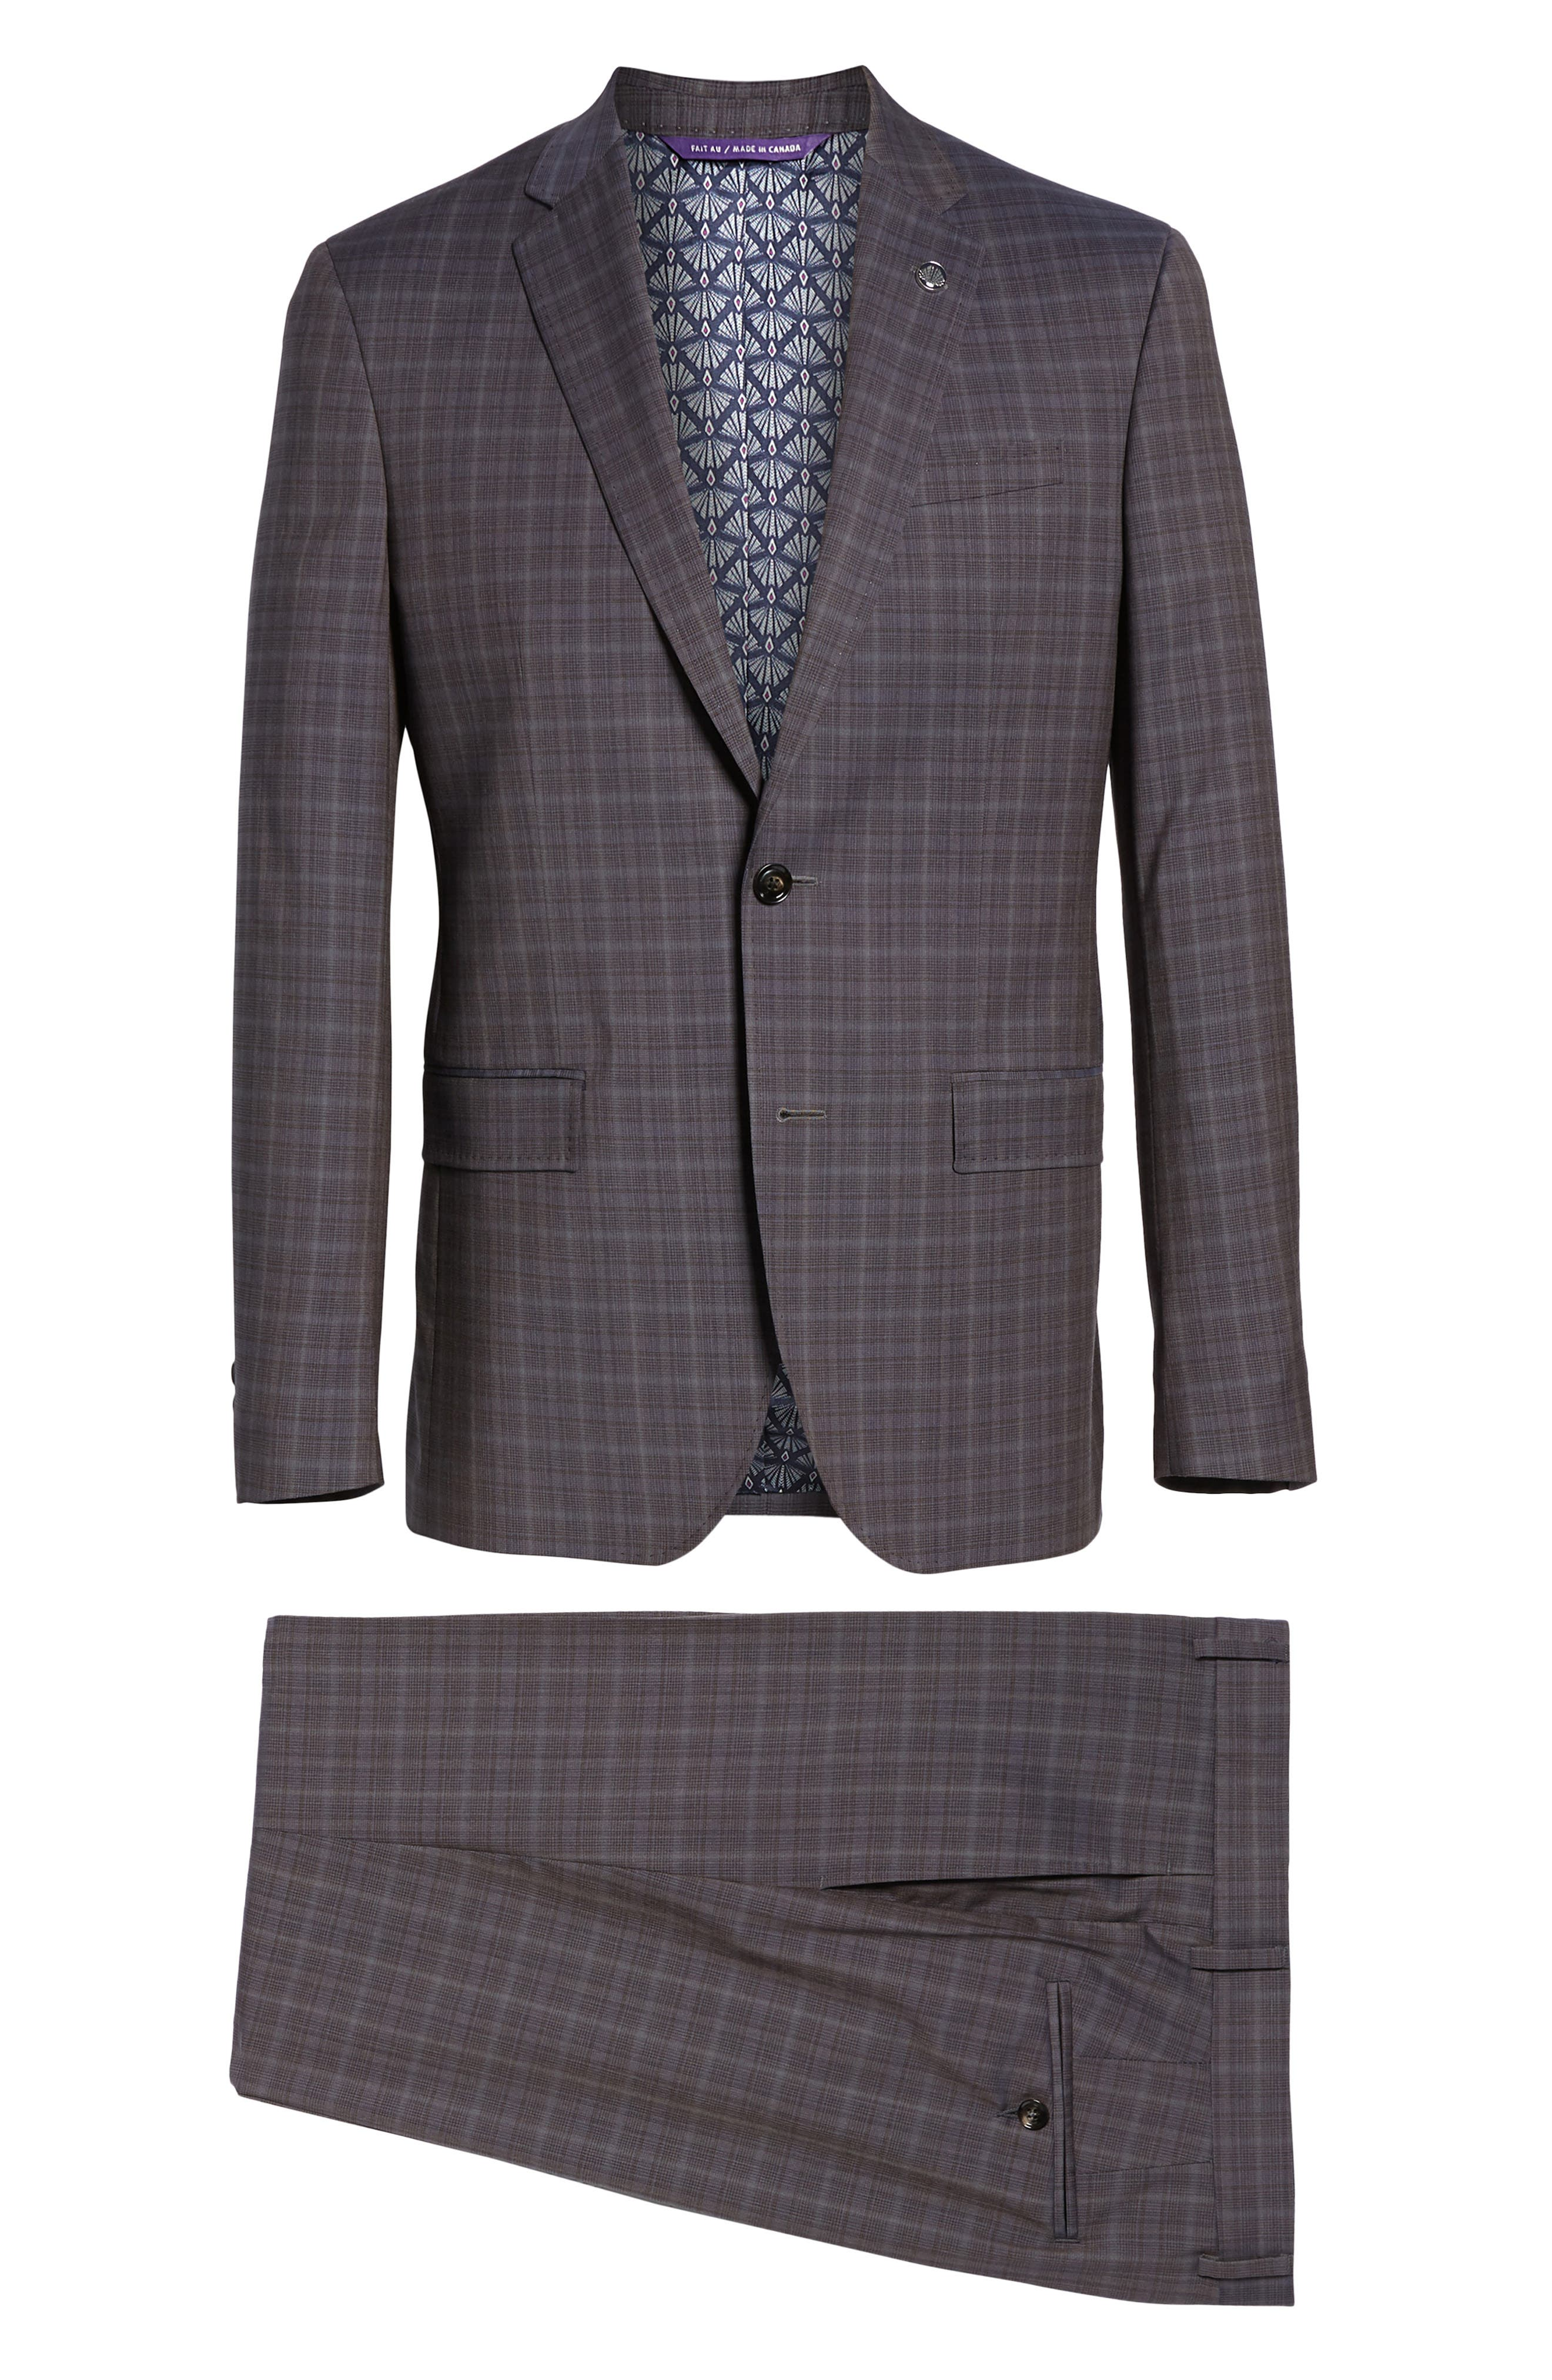 TED BAKER LONDON,                             Jay Trim Fit Plaid Wool Suit,                             Alternate thumbnail 8, color,                             TAUPE